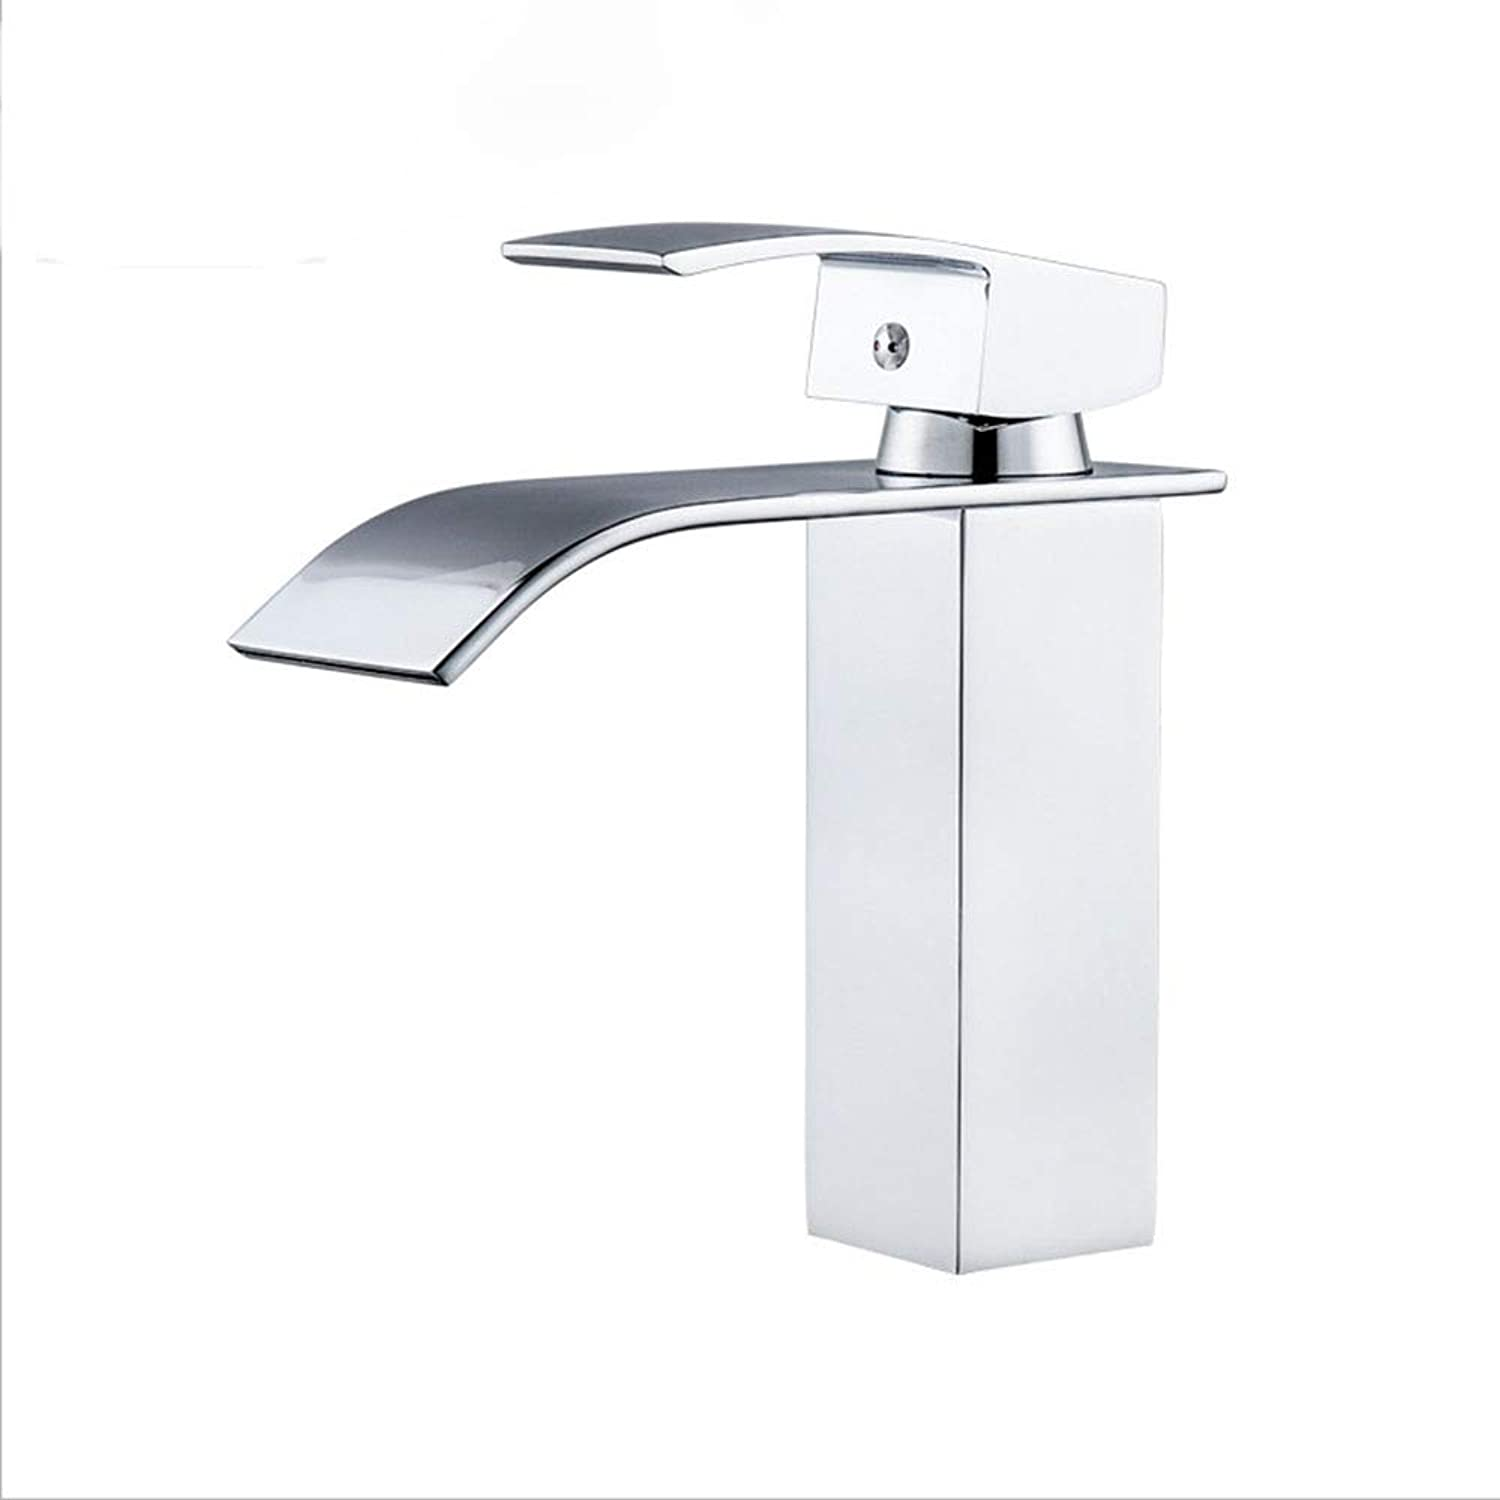 Towero Four basin faucet wide mouth waterfall faucet bathroom basin hot and cold water faucet